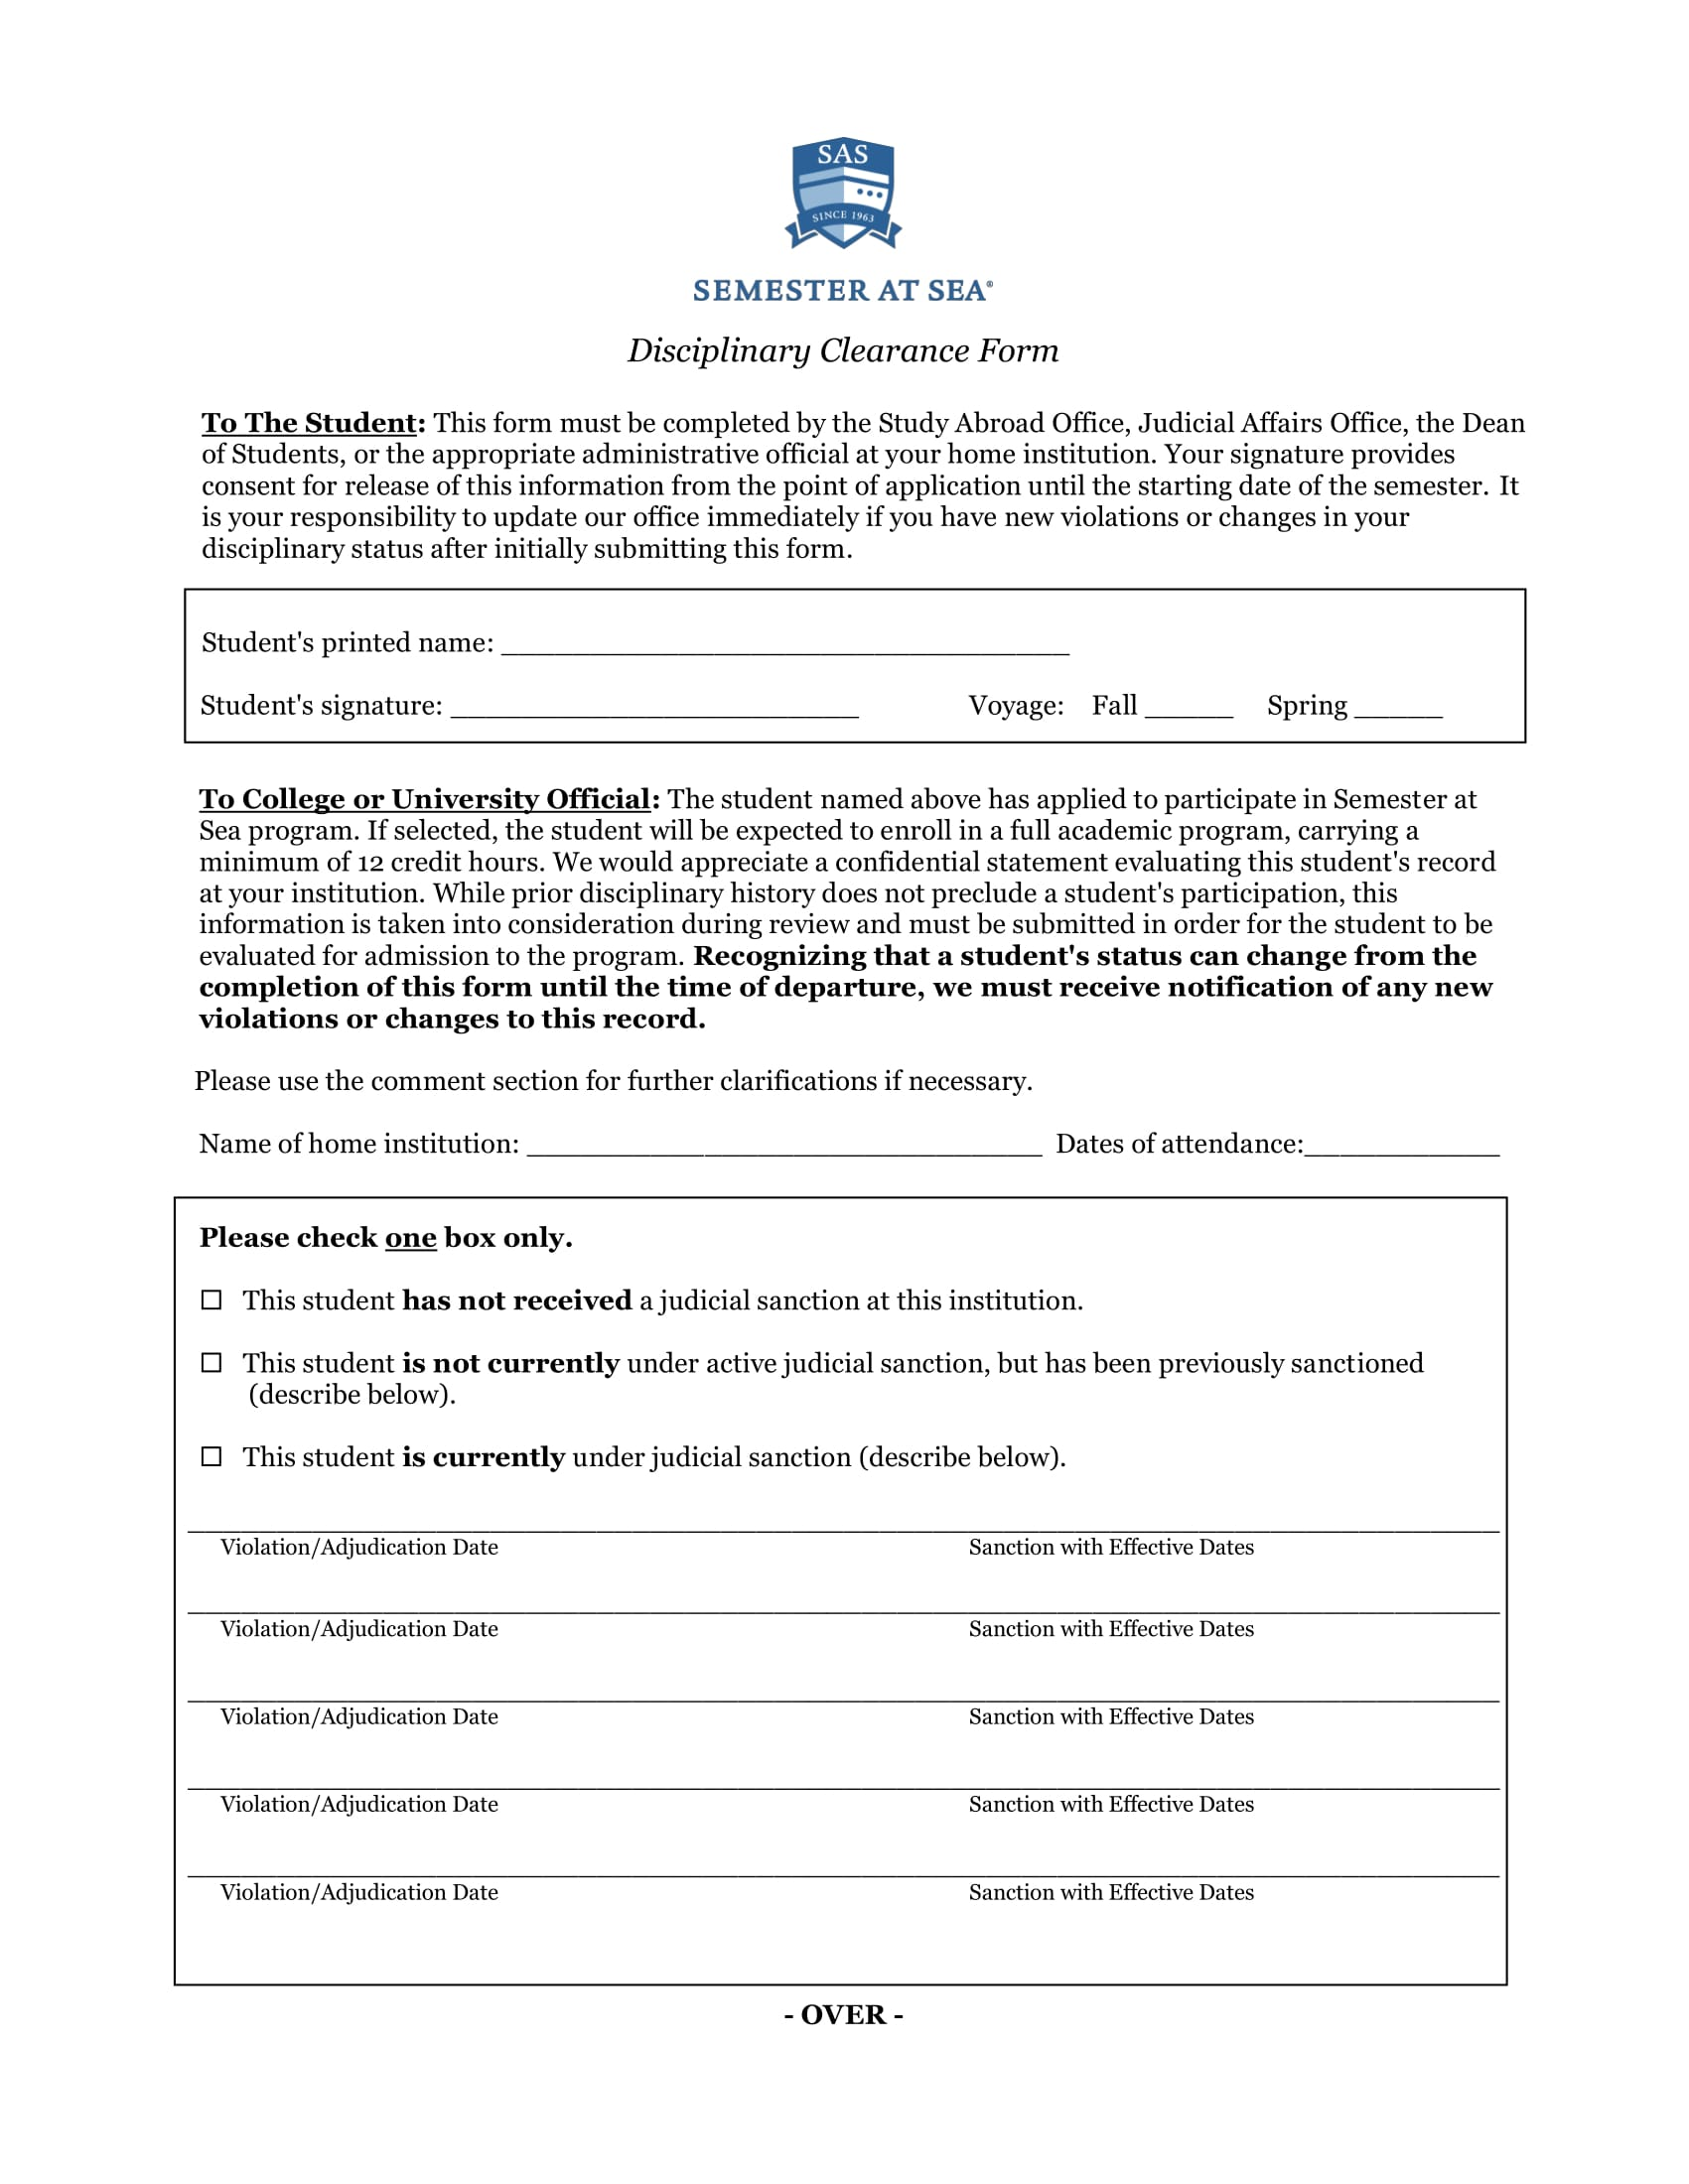 student disciplinary clearance form 1